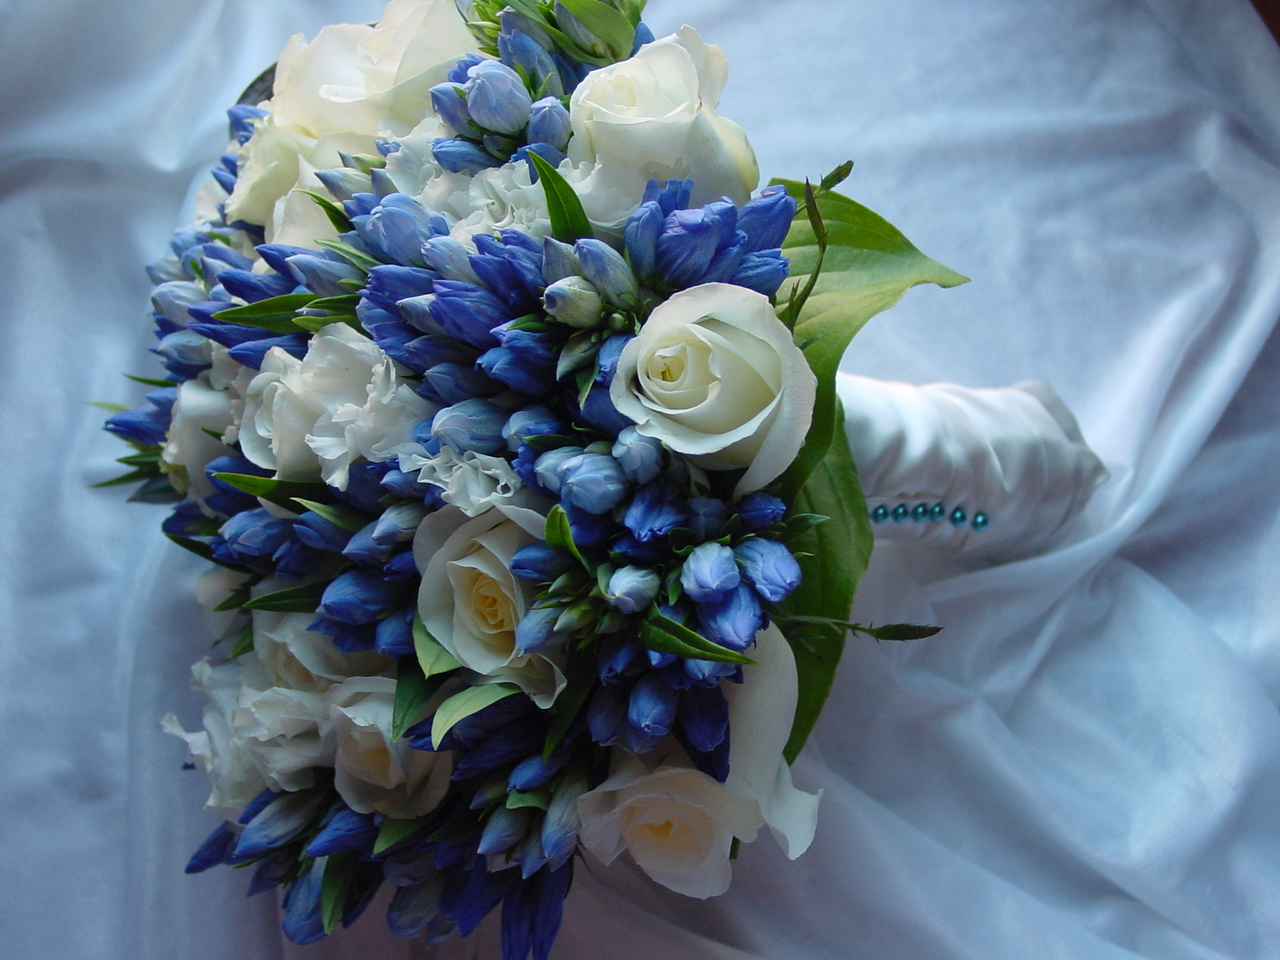 http://1.bp.blogspot.com/-QifcxghJyxM/TdJe8AVM6DI/AAAAAAAACJ0/luRsAtmtwX0/s1600/blue-wedding-flowers-and-bouquets-2.jpg